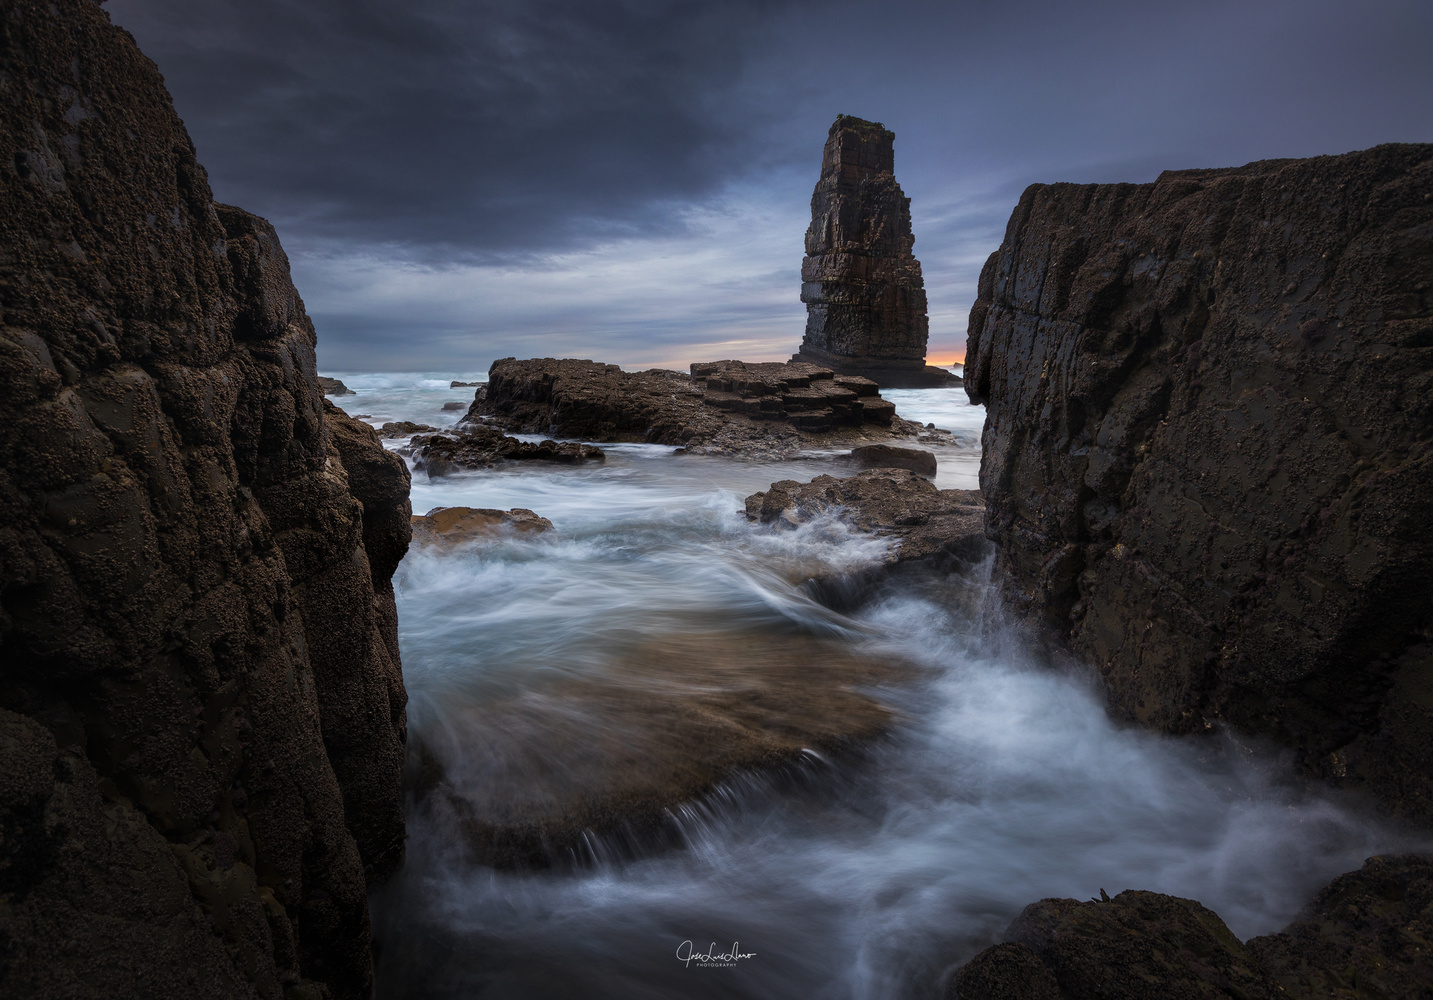 Between rocks by Jose Luis Llano